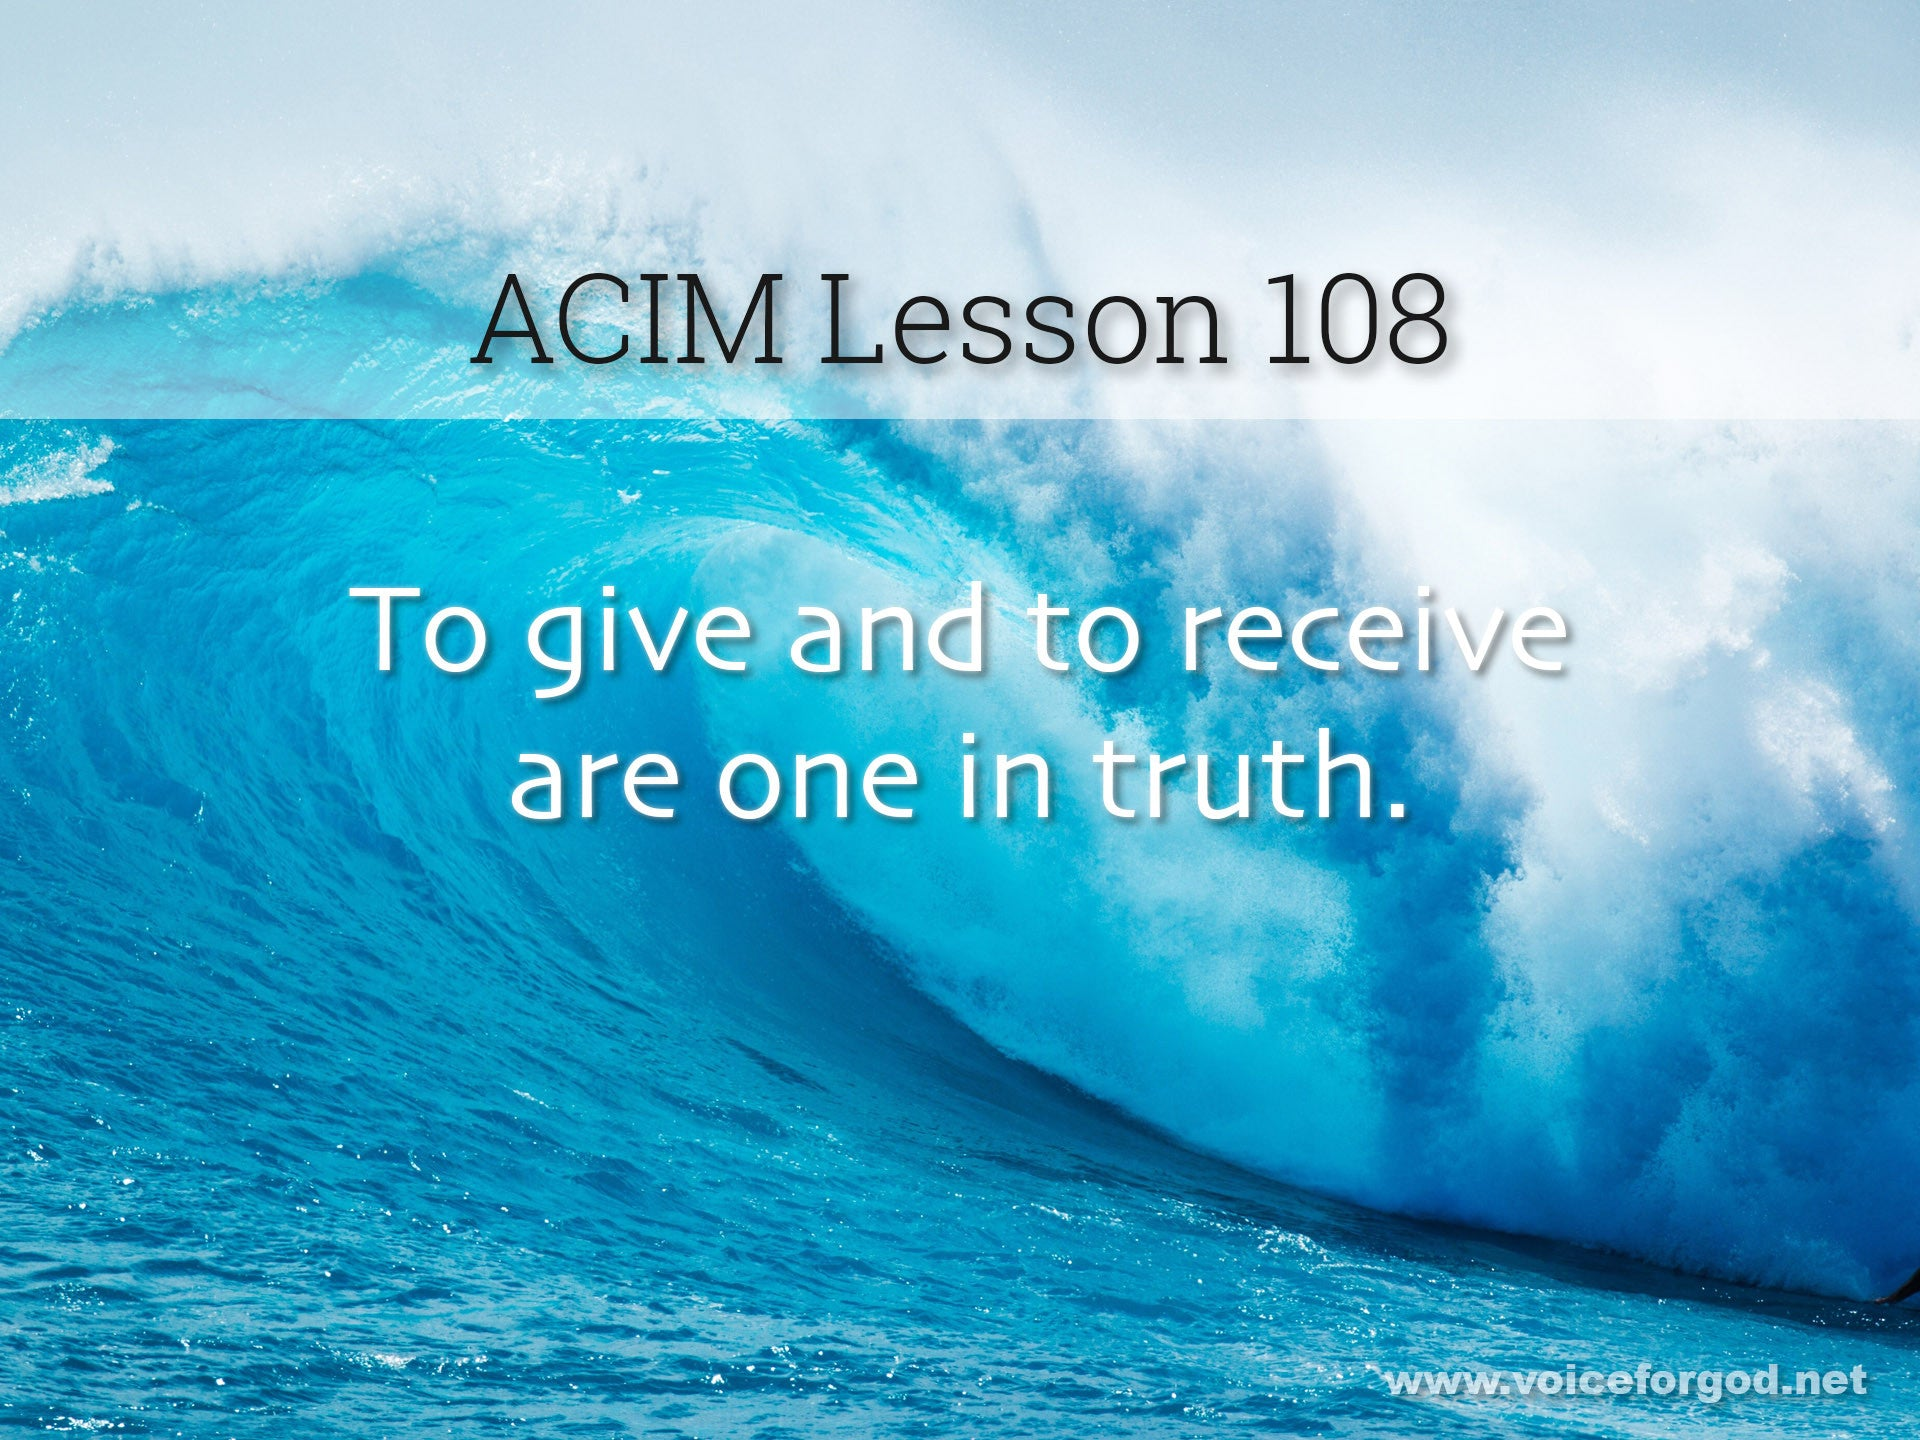 ACIM Lesson 108 - A Course in Miracles Workbook Lesson 108